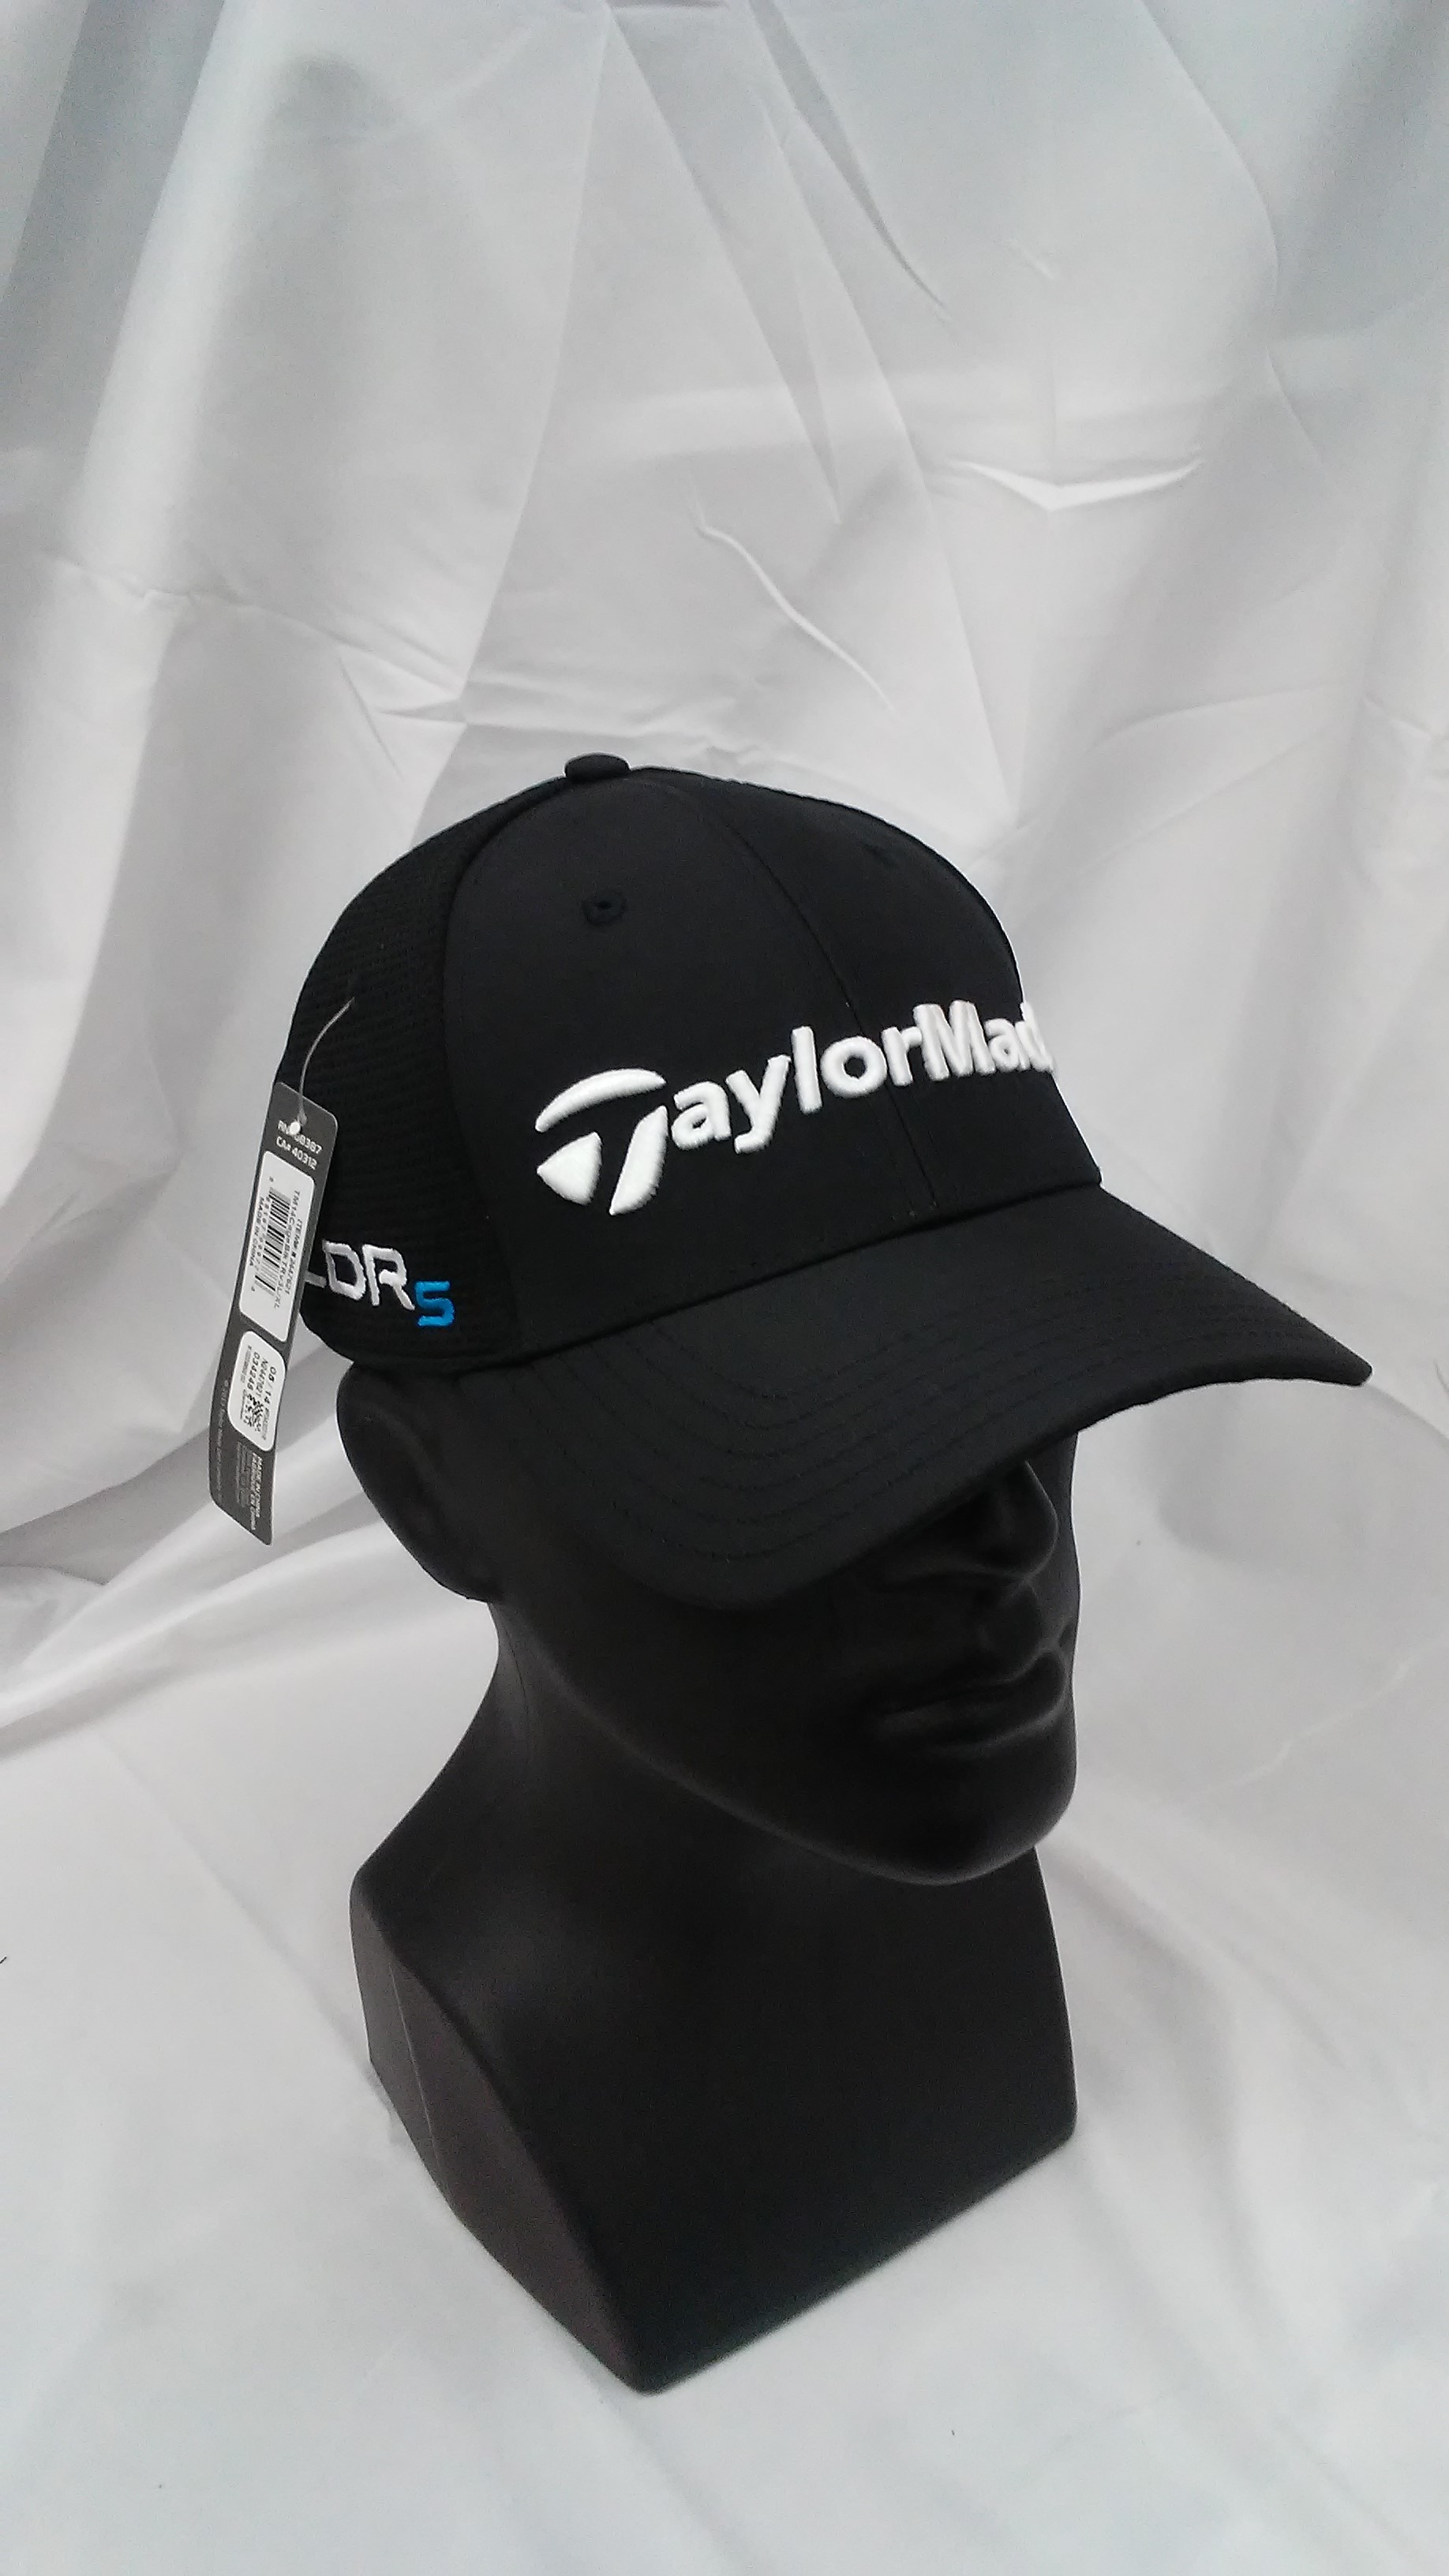 20c293a25ae Visit our eBay Store for more great deals  Hurricane Golf New Taylormade  Golf 2014 Tour Cage Black Fitted Hat S M SLDRs Logo BUY IT NOW  5.99!